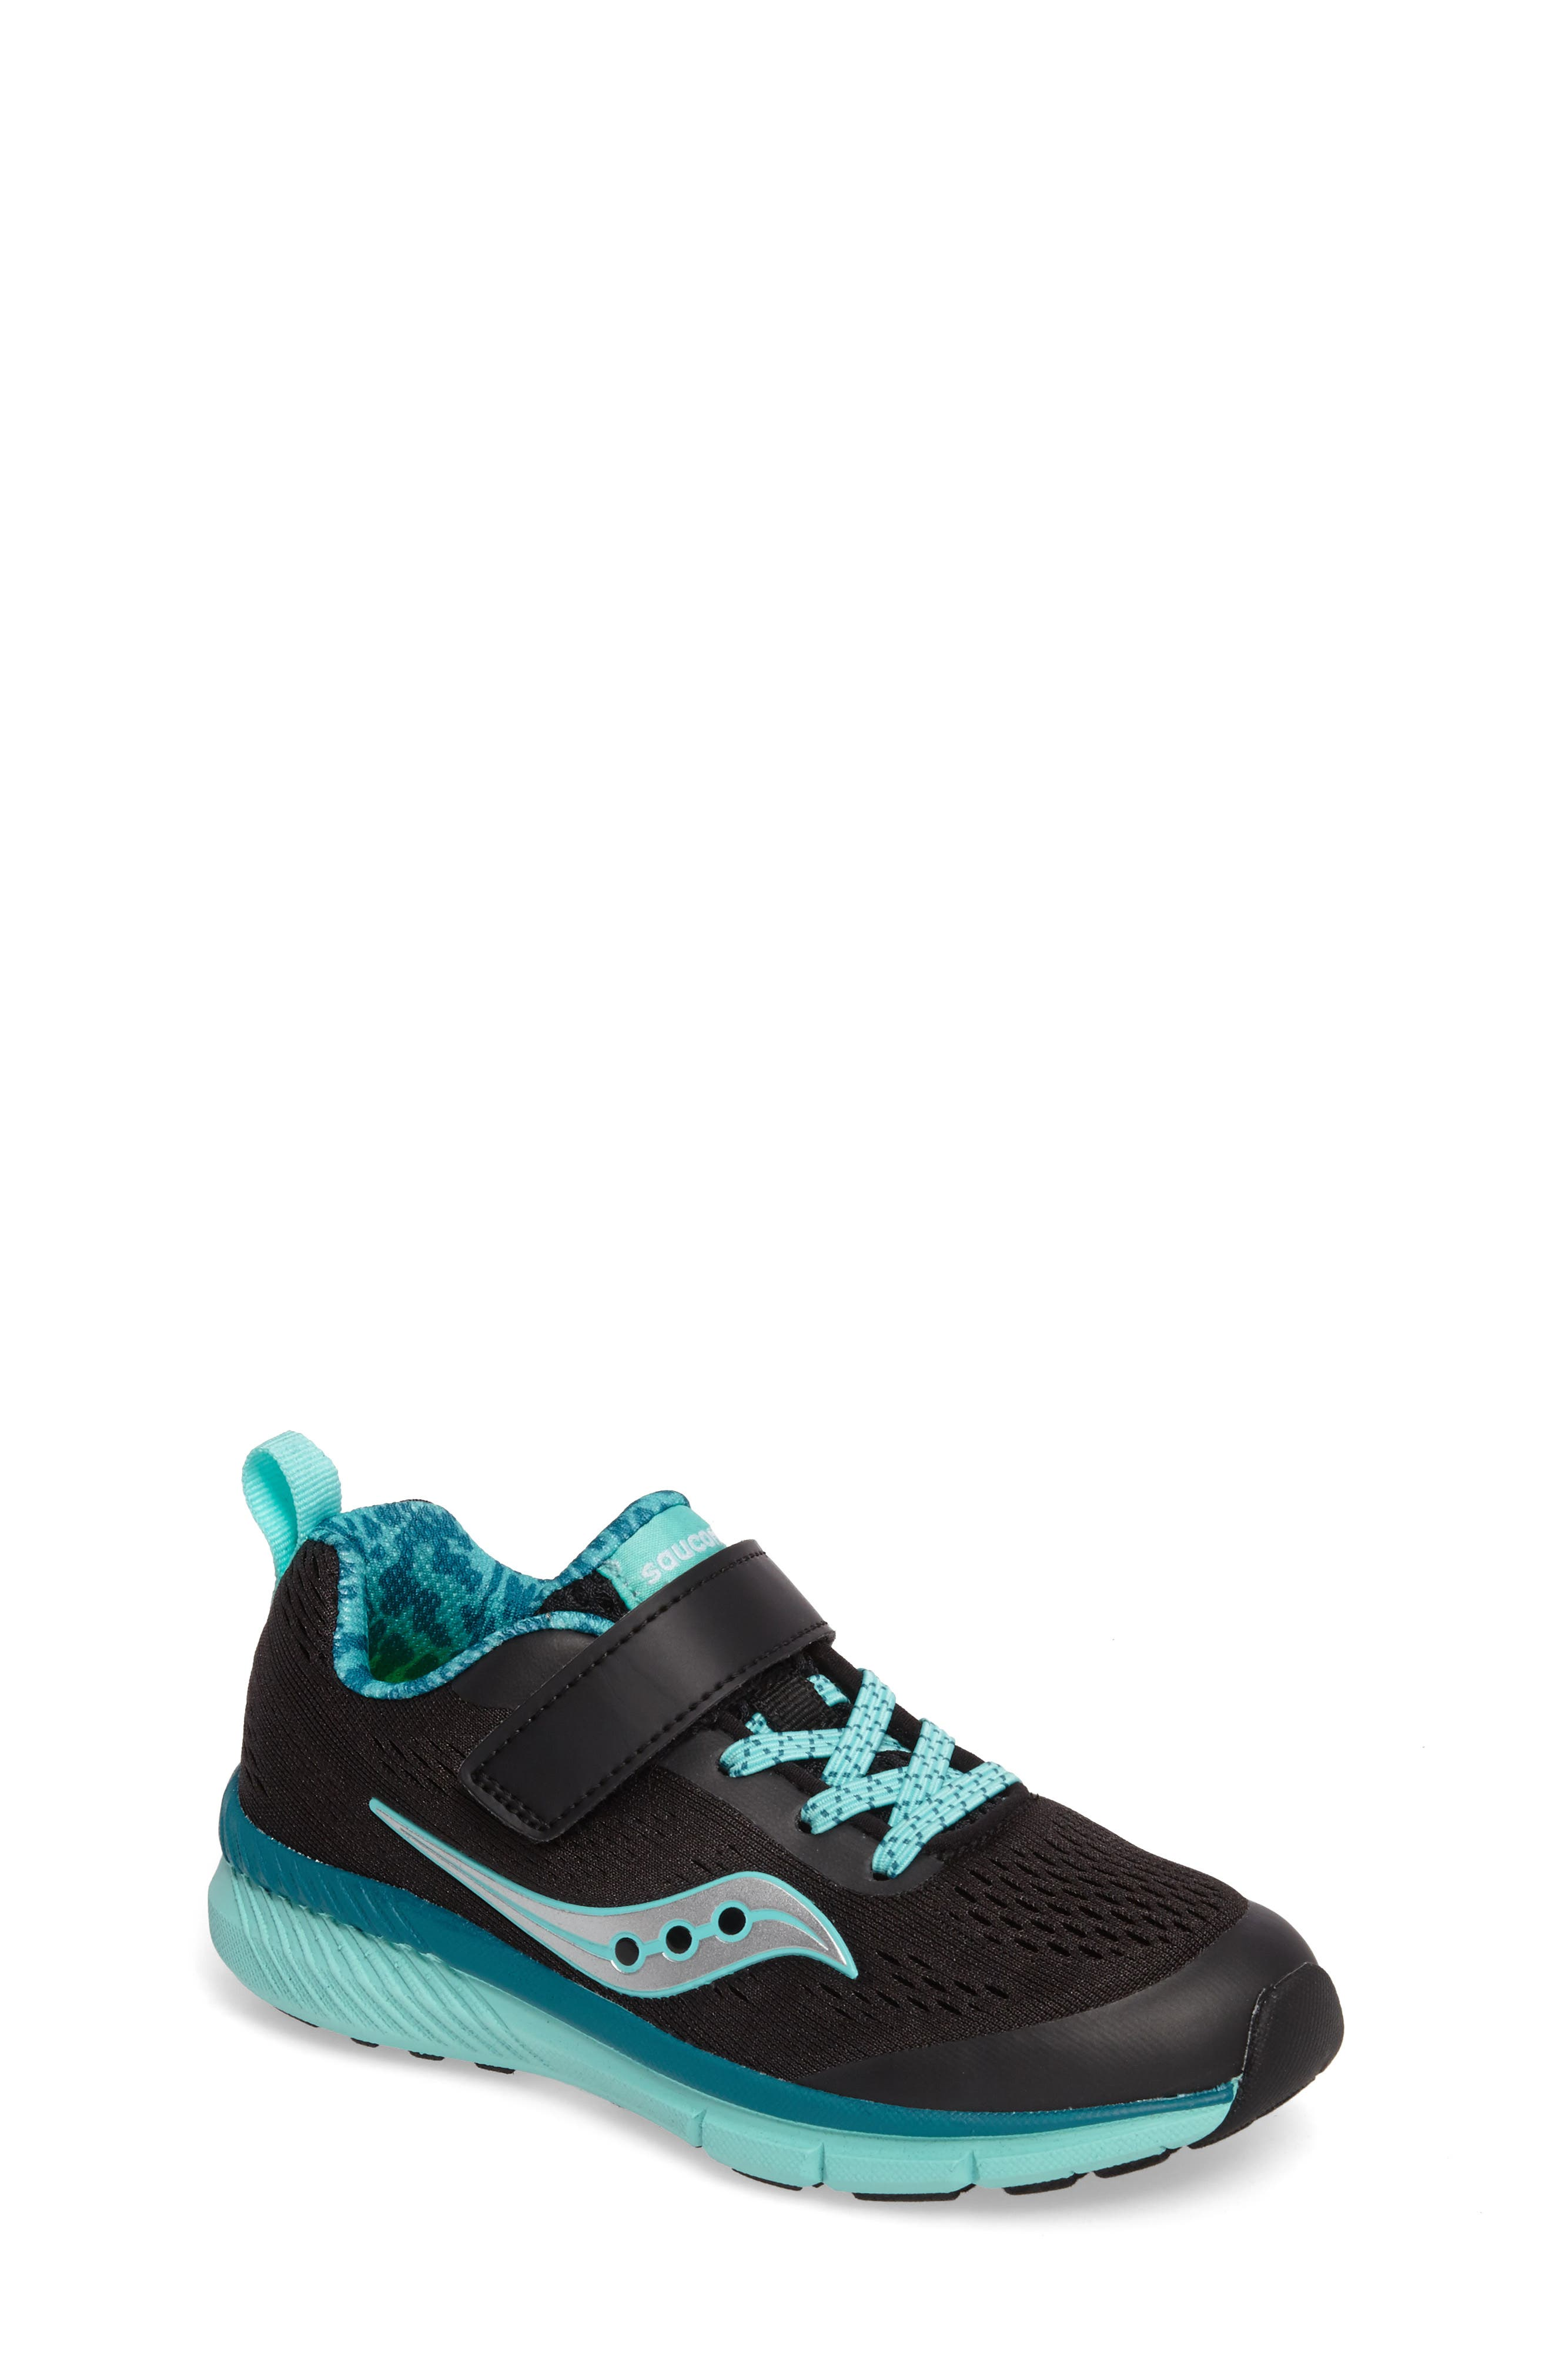 Main Image - Saucony Ideal Sneaker (Toddler & Little Kid)